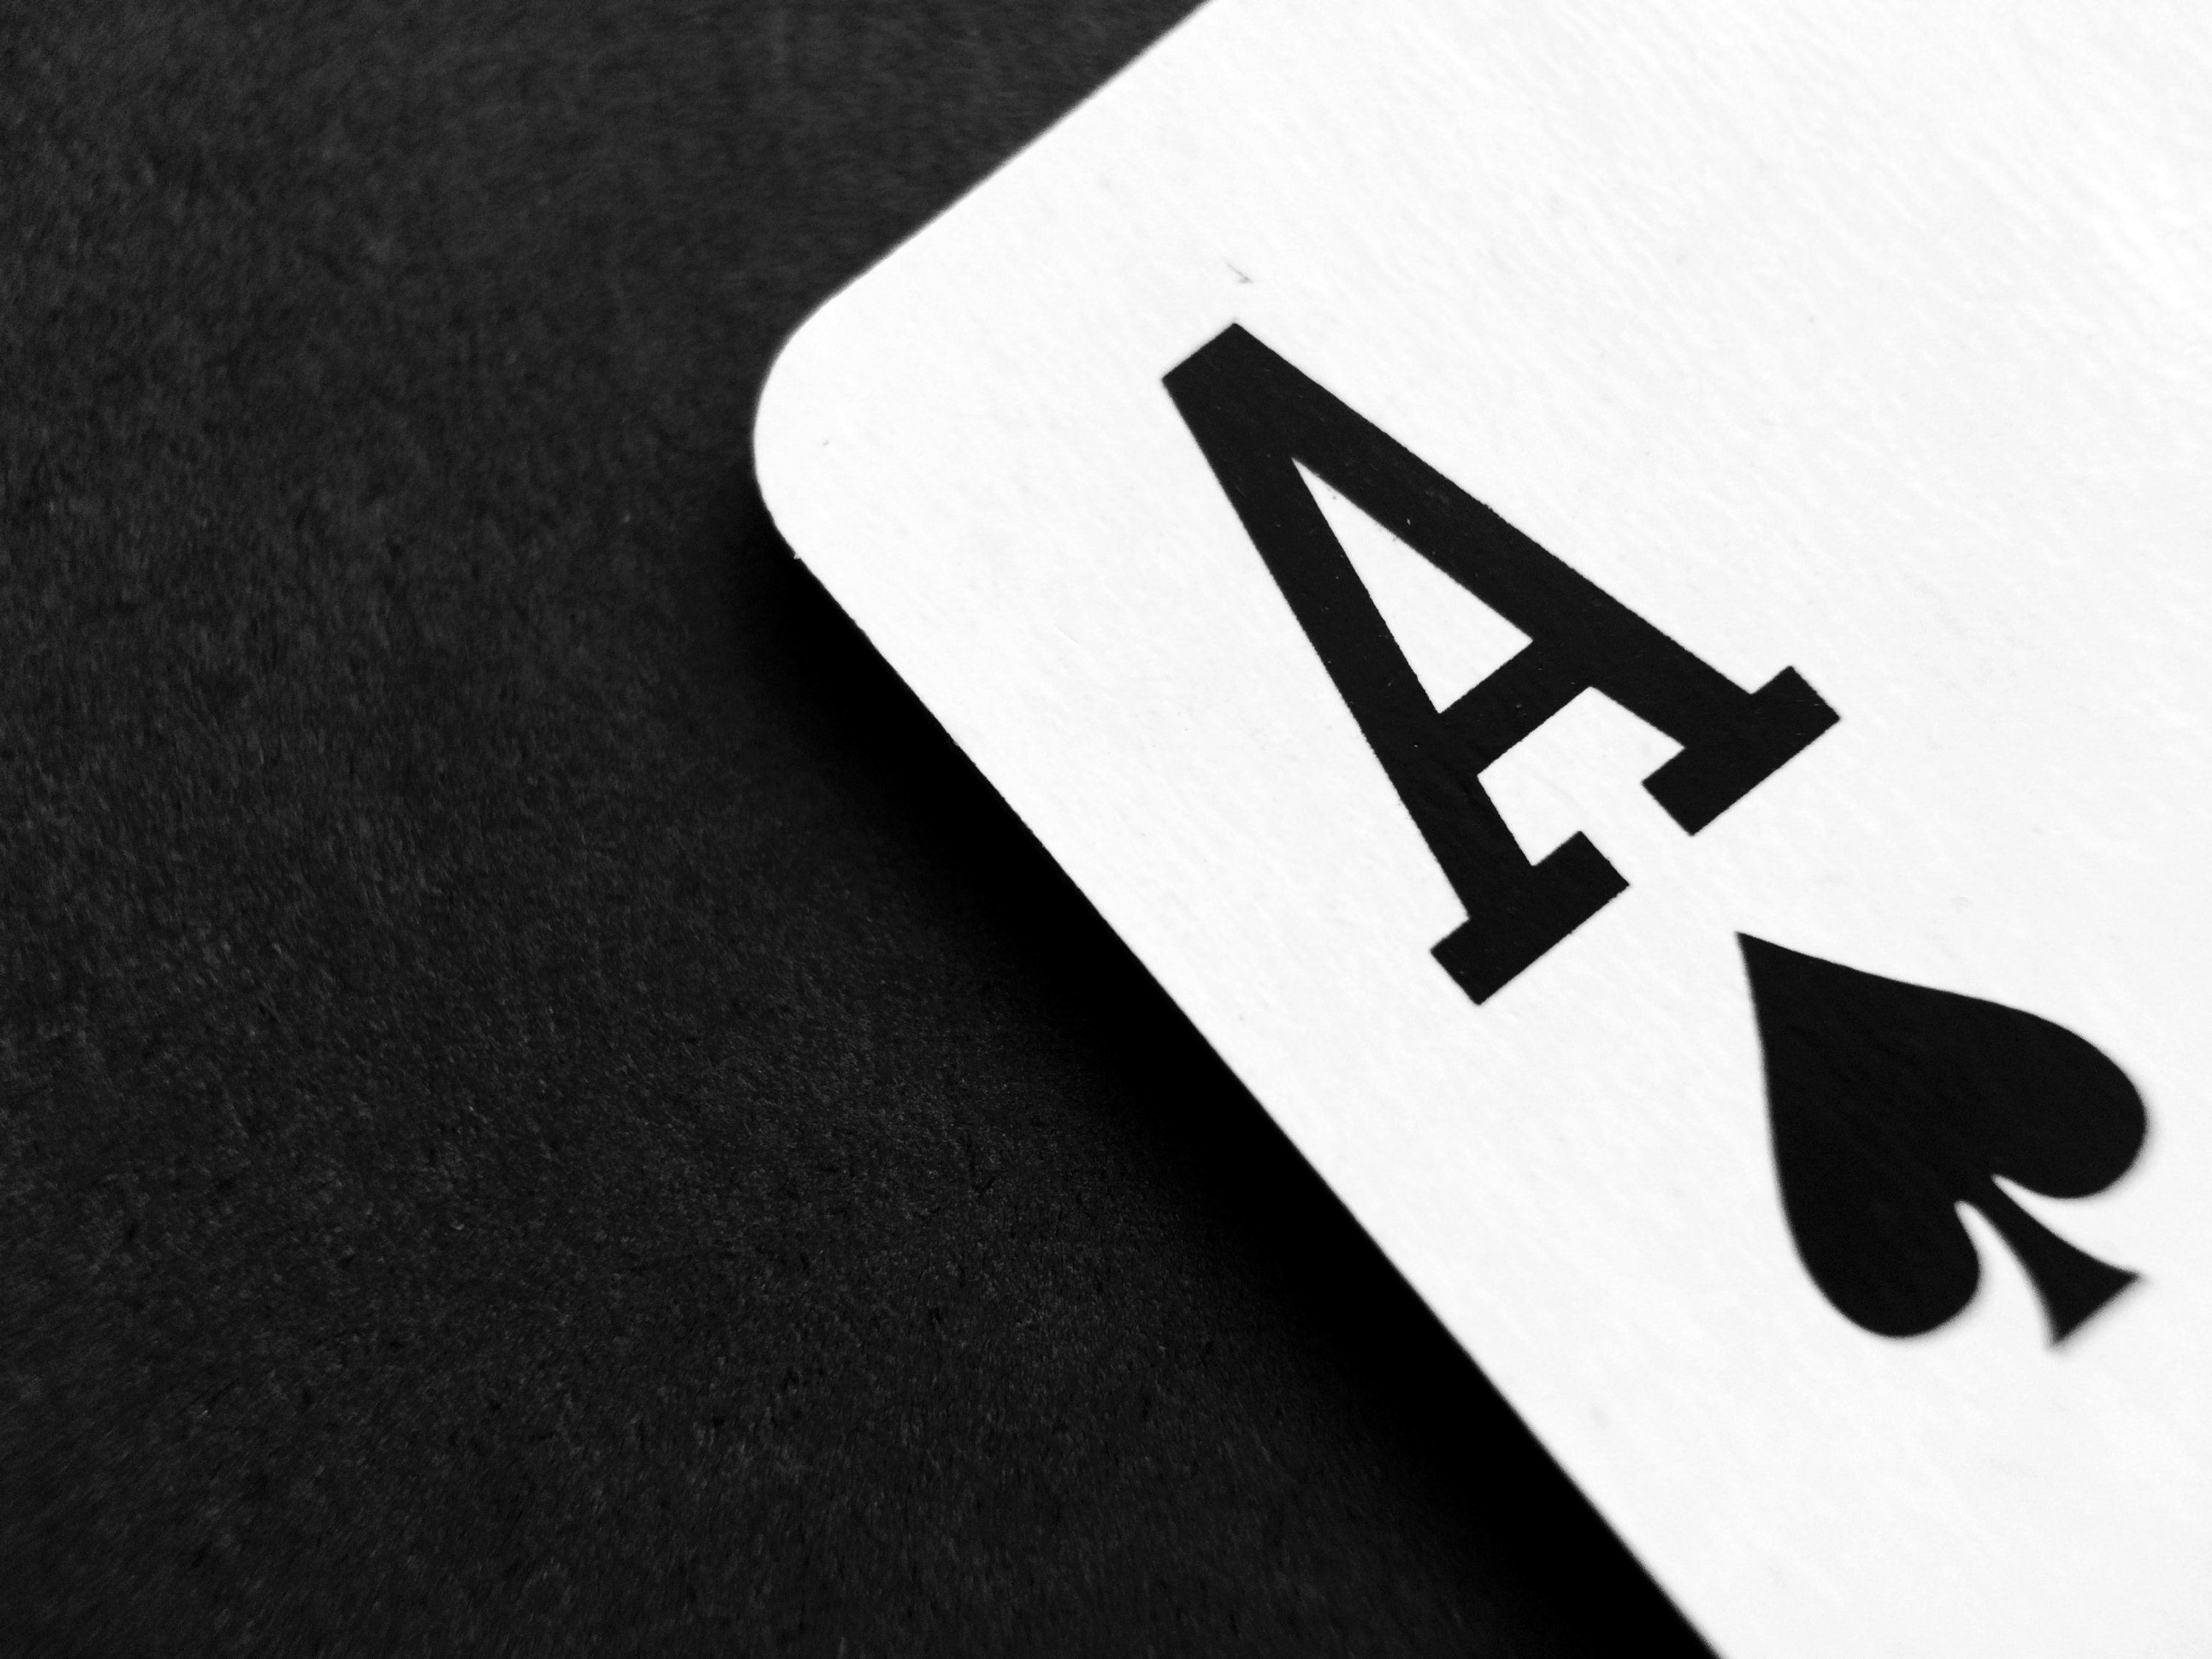 ace-card-casino-262333